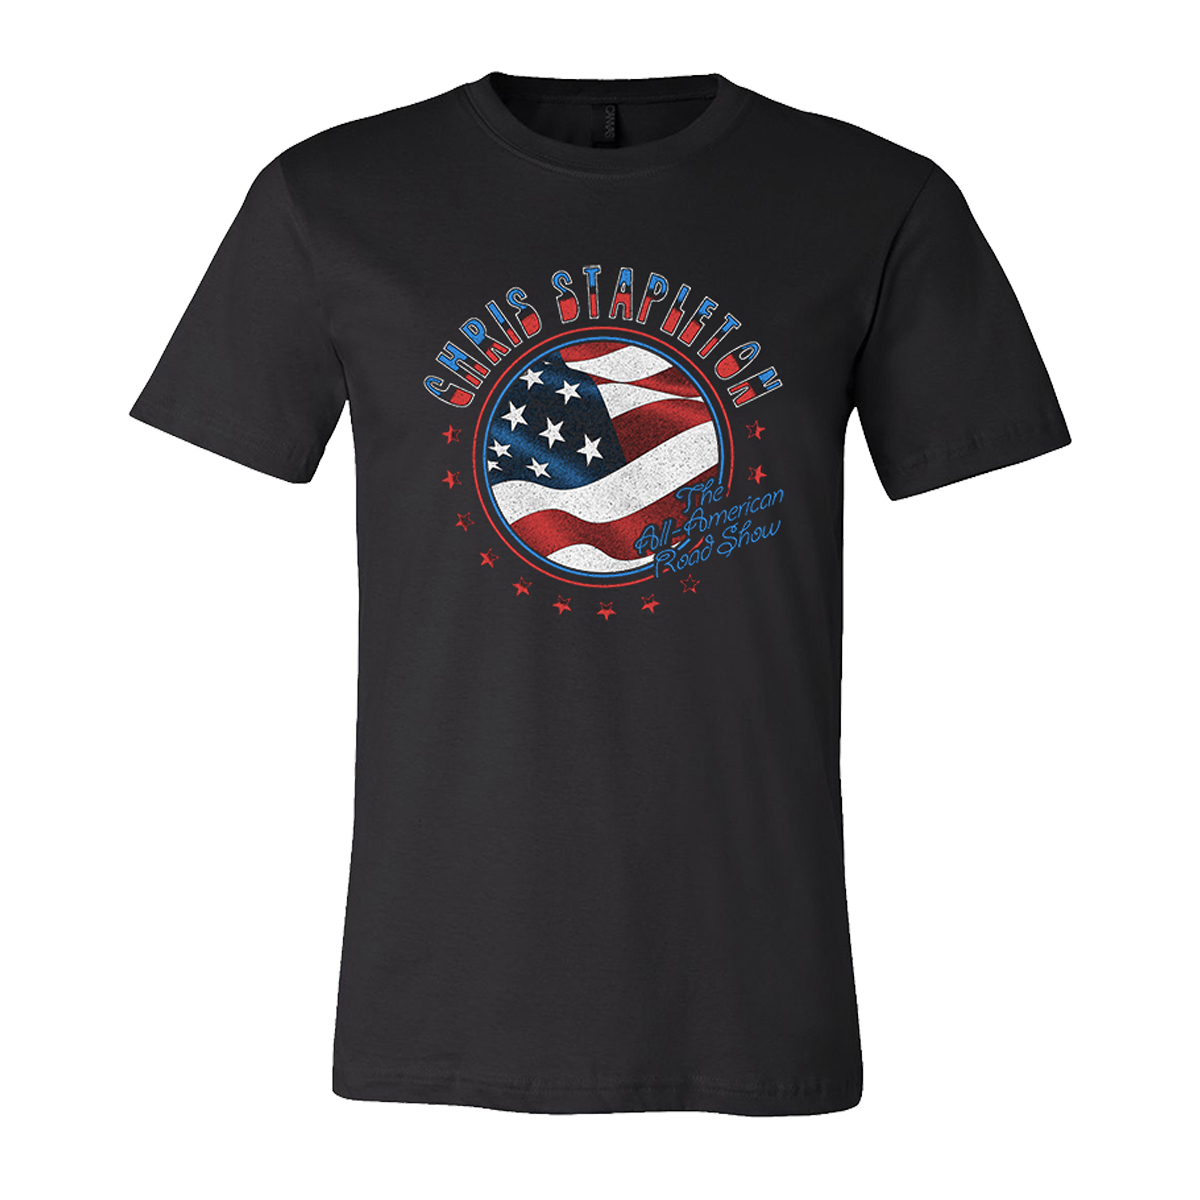 The 2018 All American Road Show Flag T